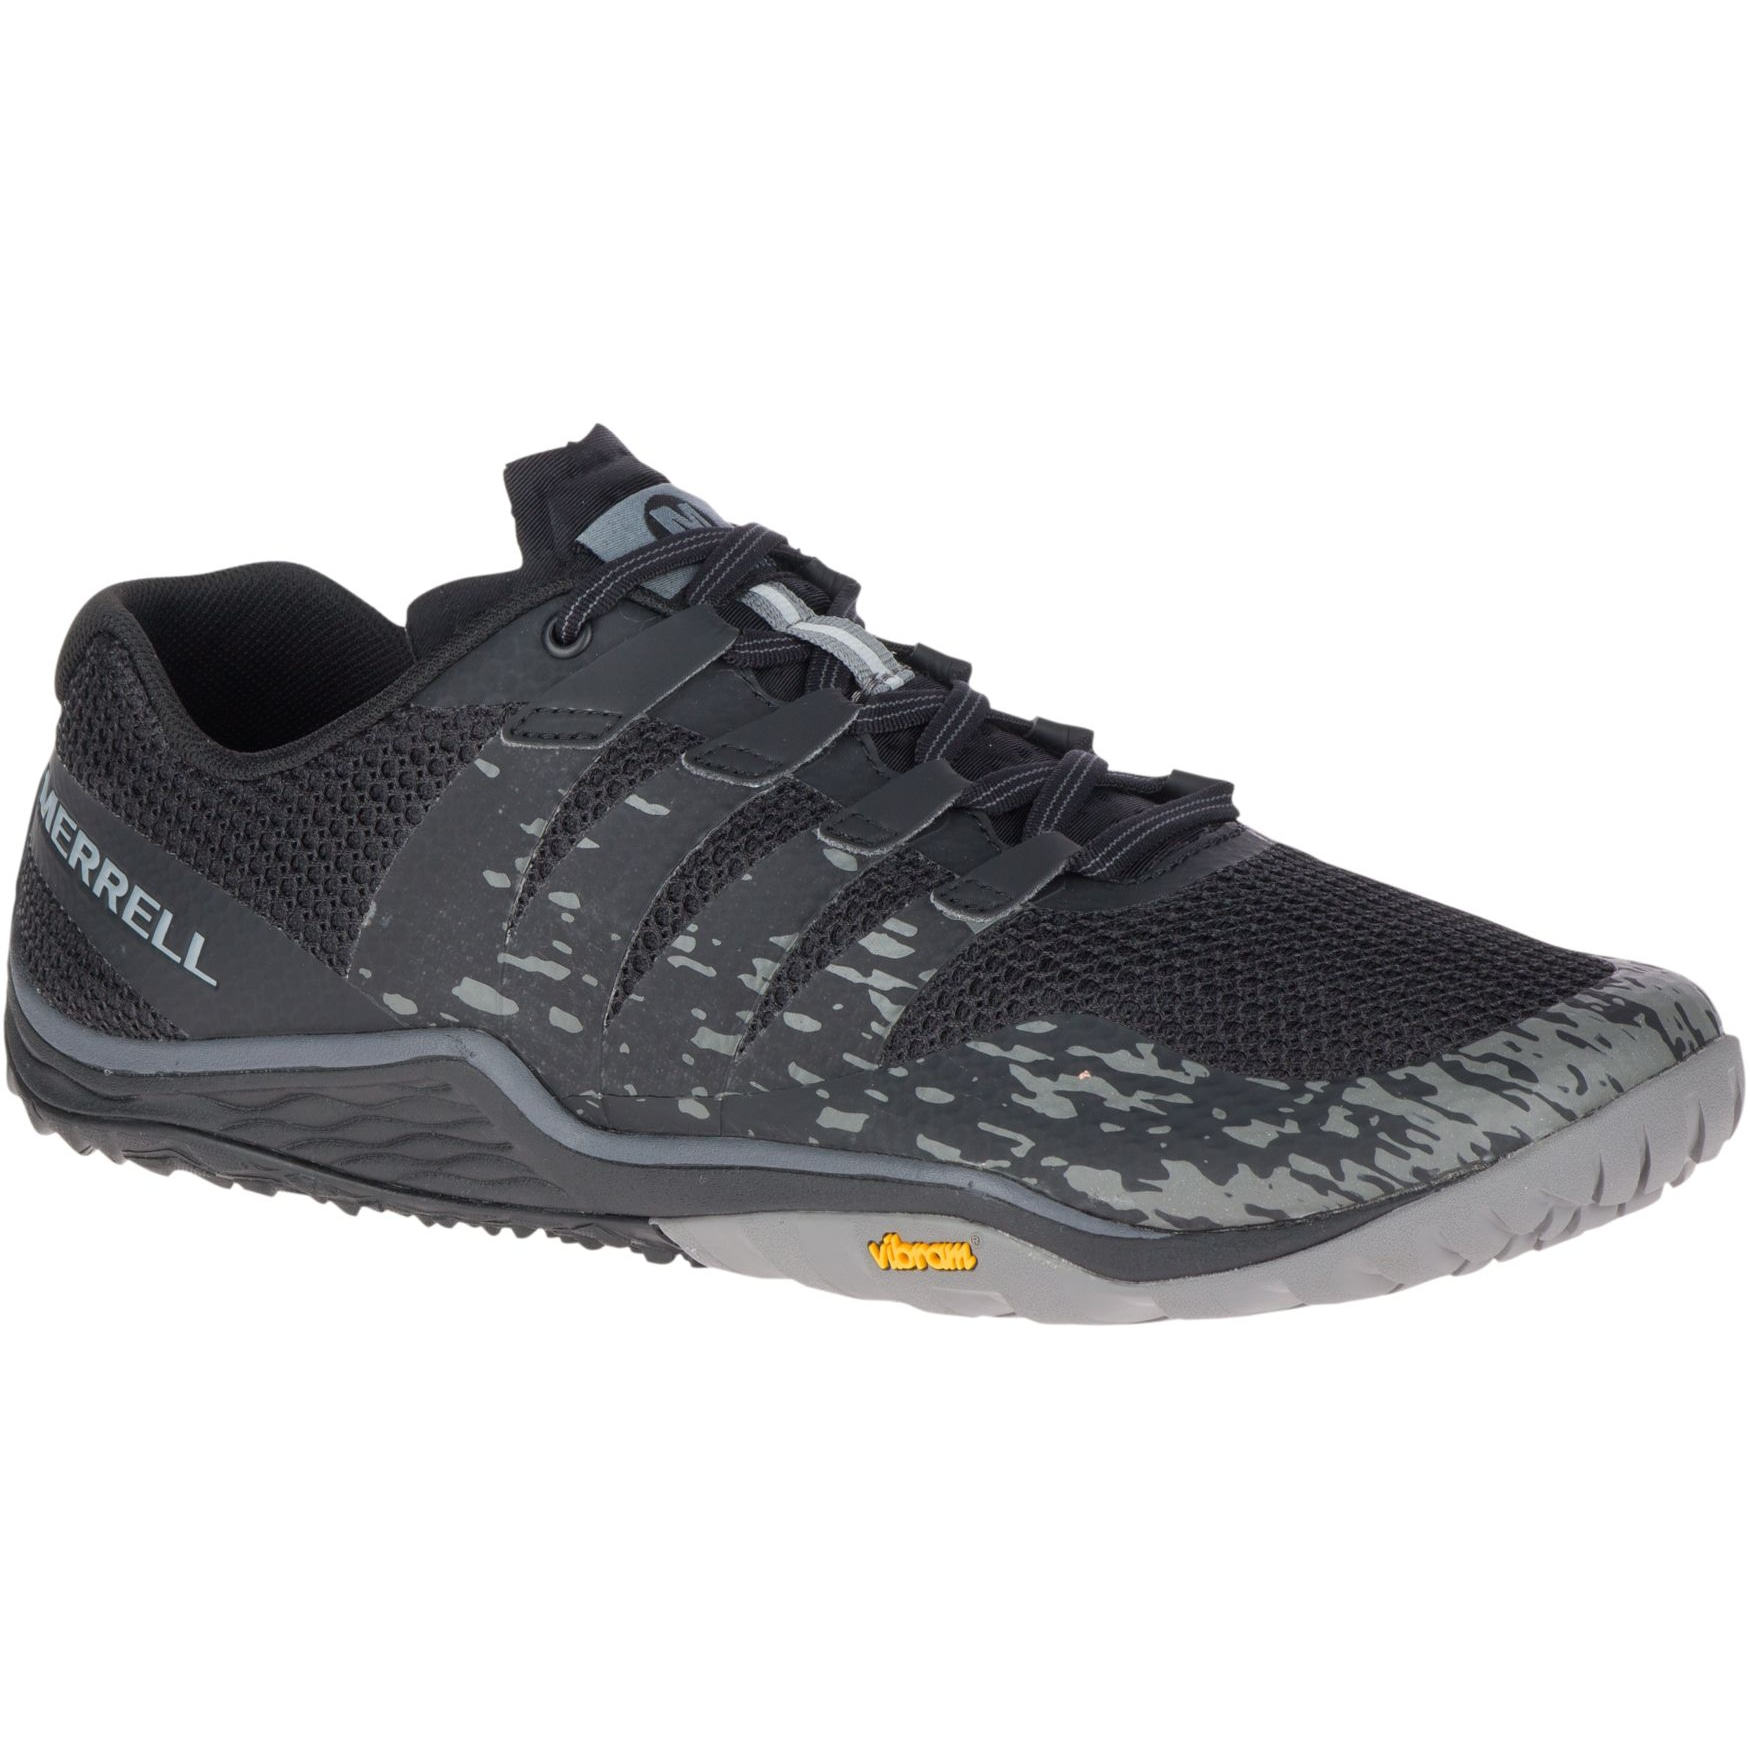 Trail Glove 5 Shoe - Men's